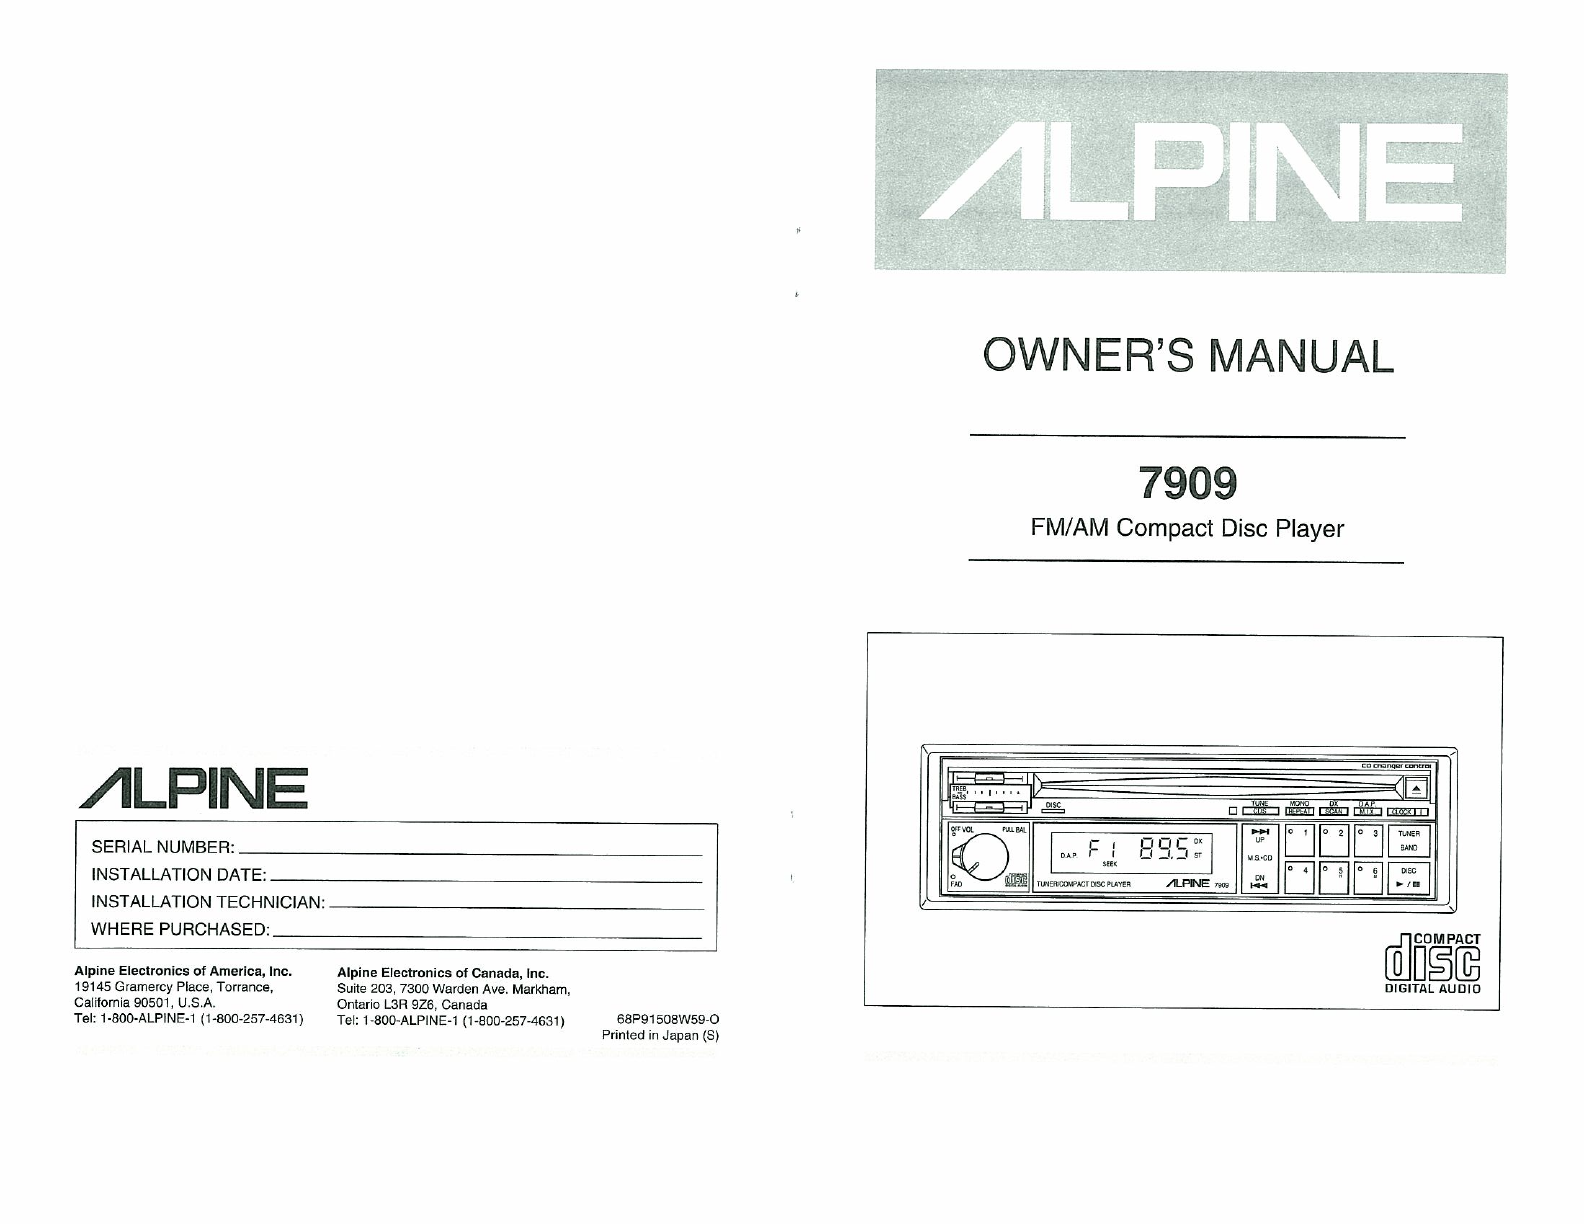 alpine car stereo system 7909 user guide manualsonline com rh caraudio manualsonline com User Guides Samples iPad Manual